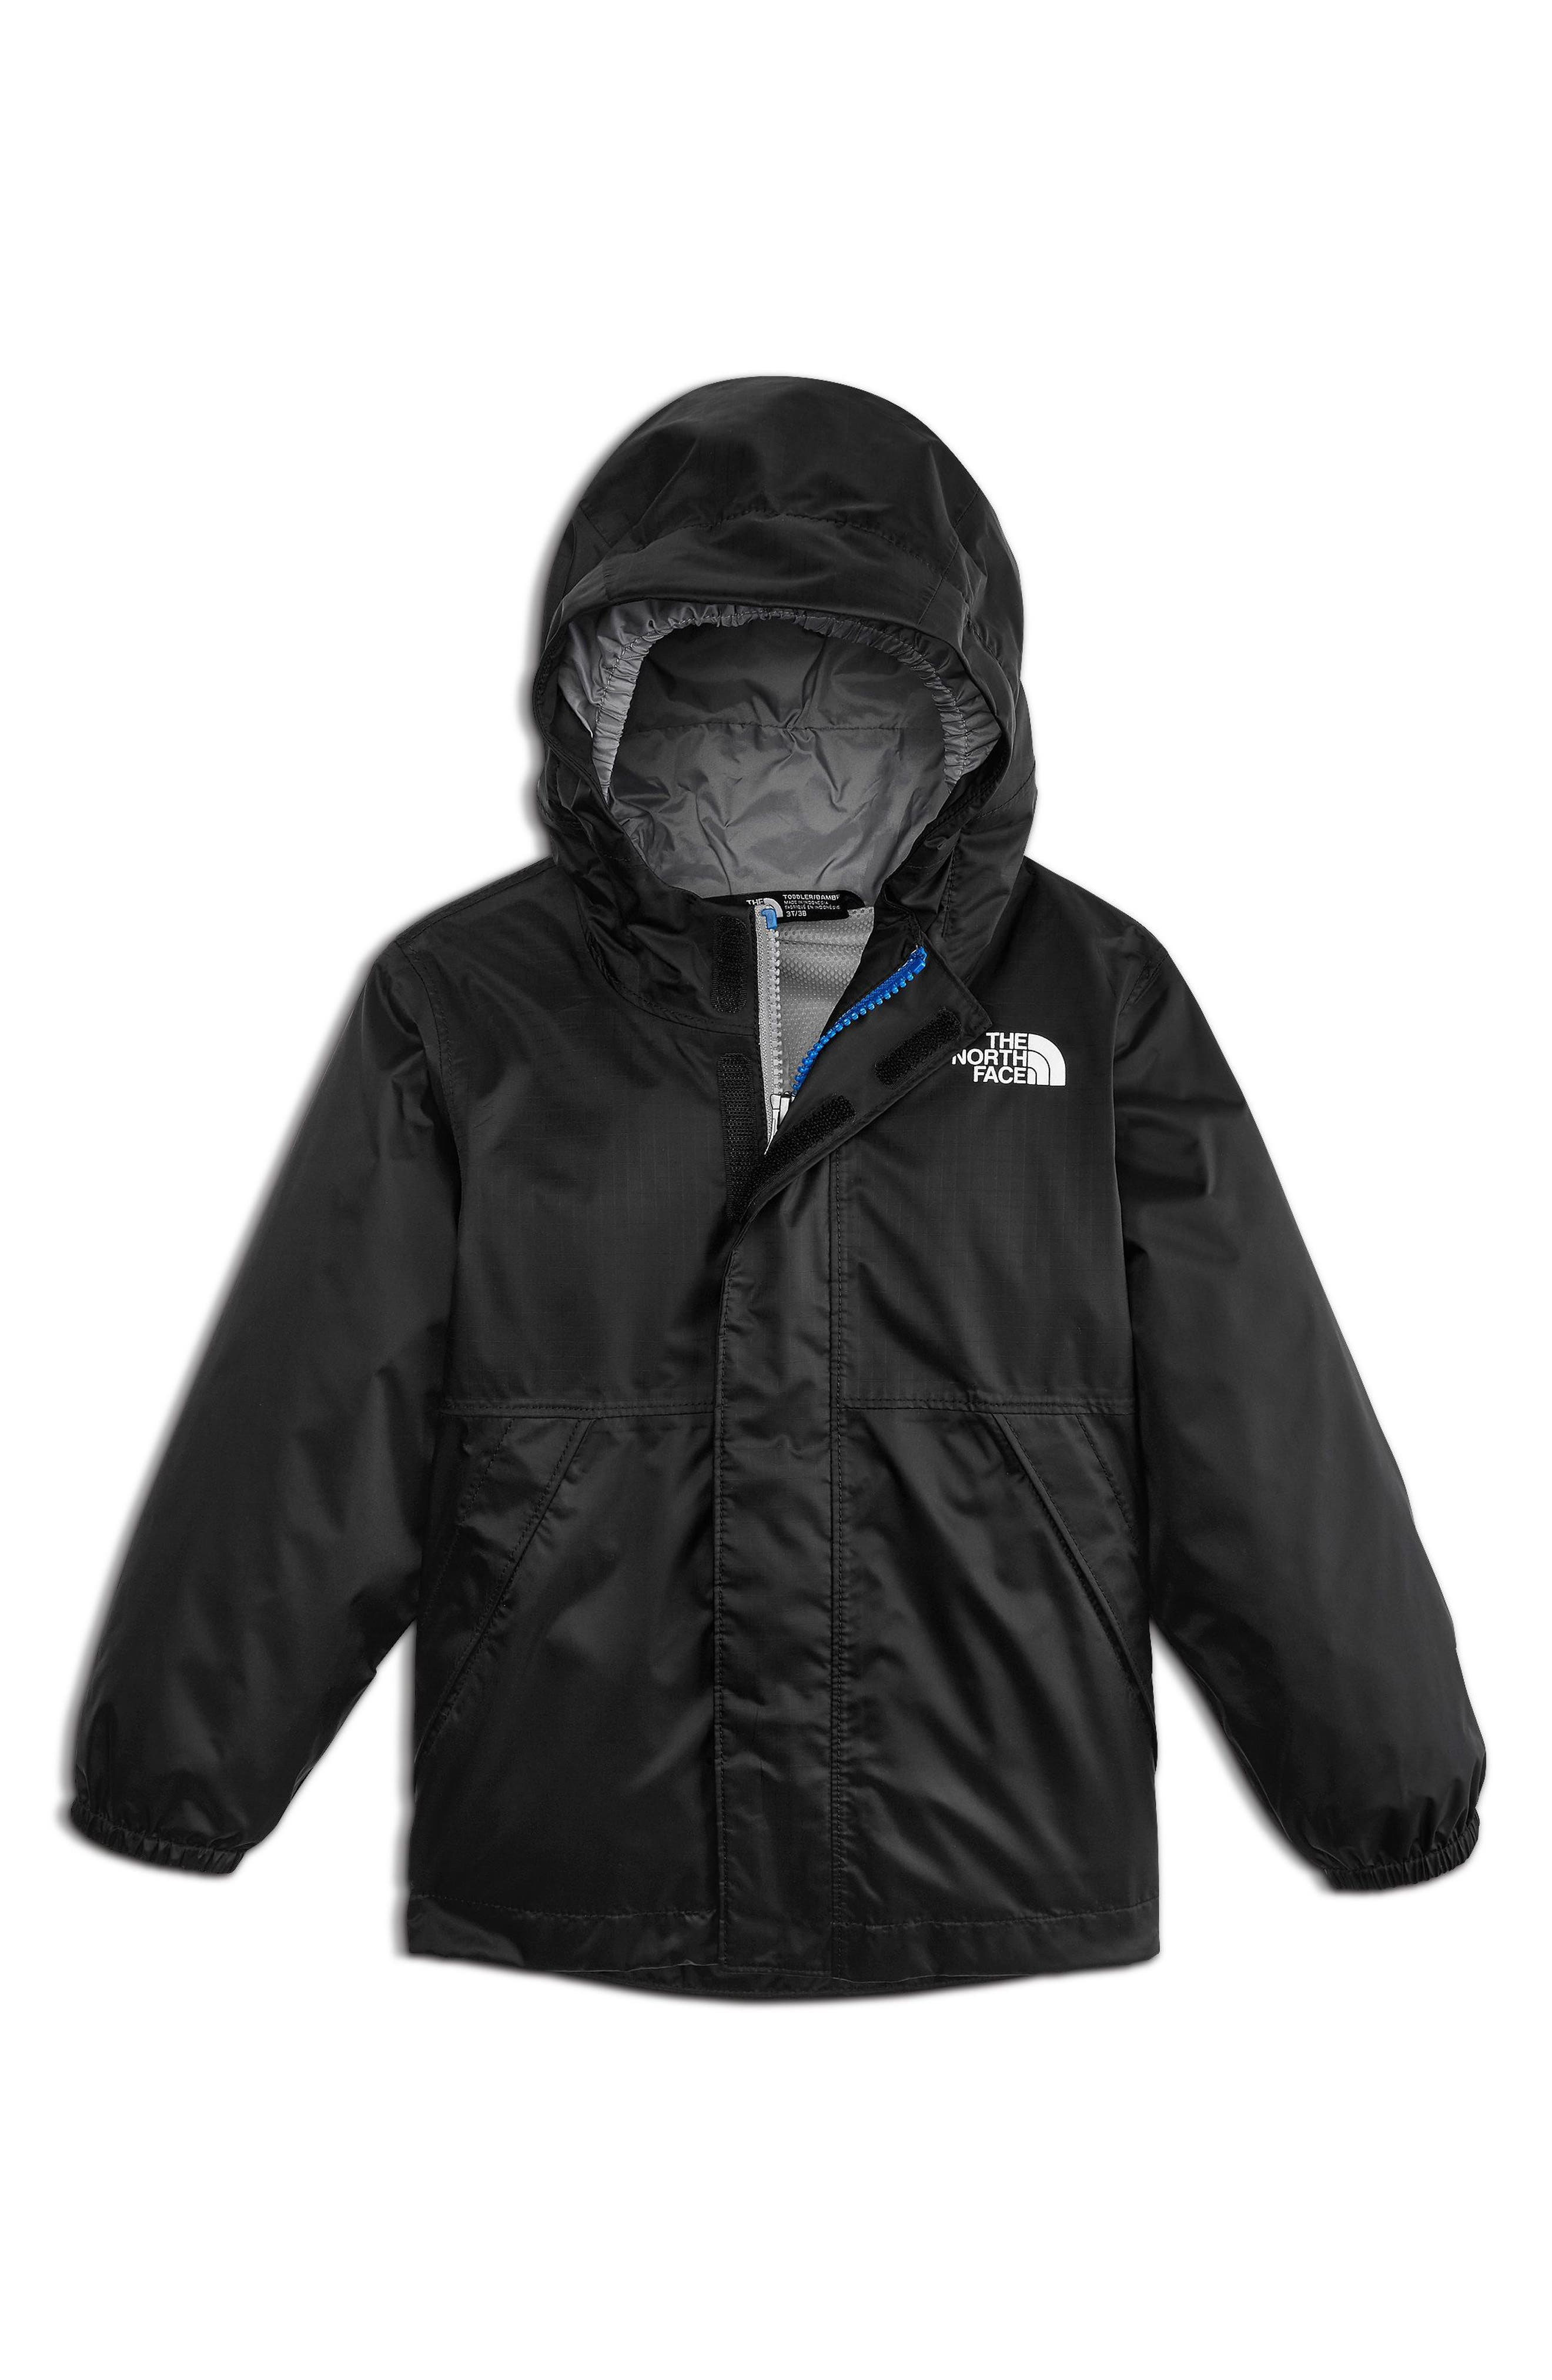 Alternate Image 1 Selected - The North Face Stormy Rain TriClimate® Waterproof 3-in-1 Jacket (Toddler Boys & Little Boys)